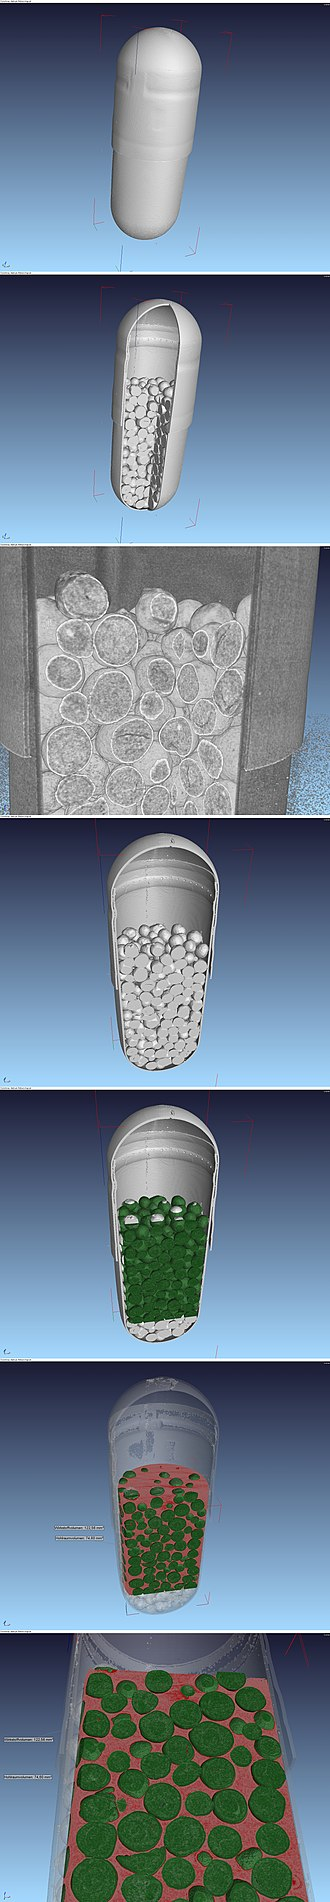 Capsule (pharmacy) - Reconstruction from µCT-data of a hard starch capsule containing Diclofenac. Resolution 18,6 µm/pixel.